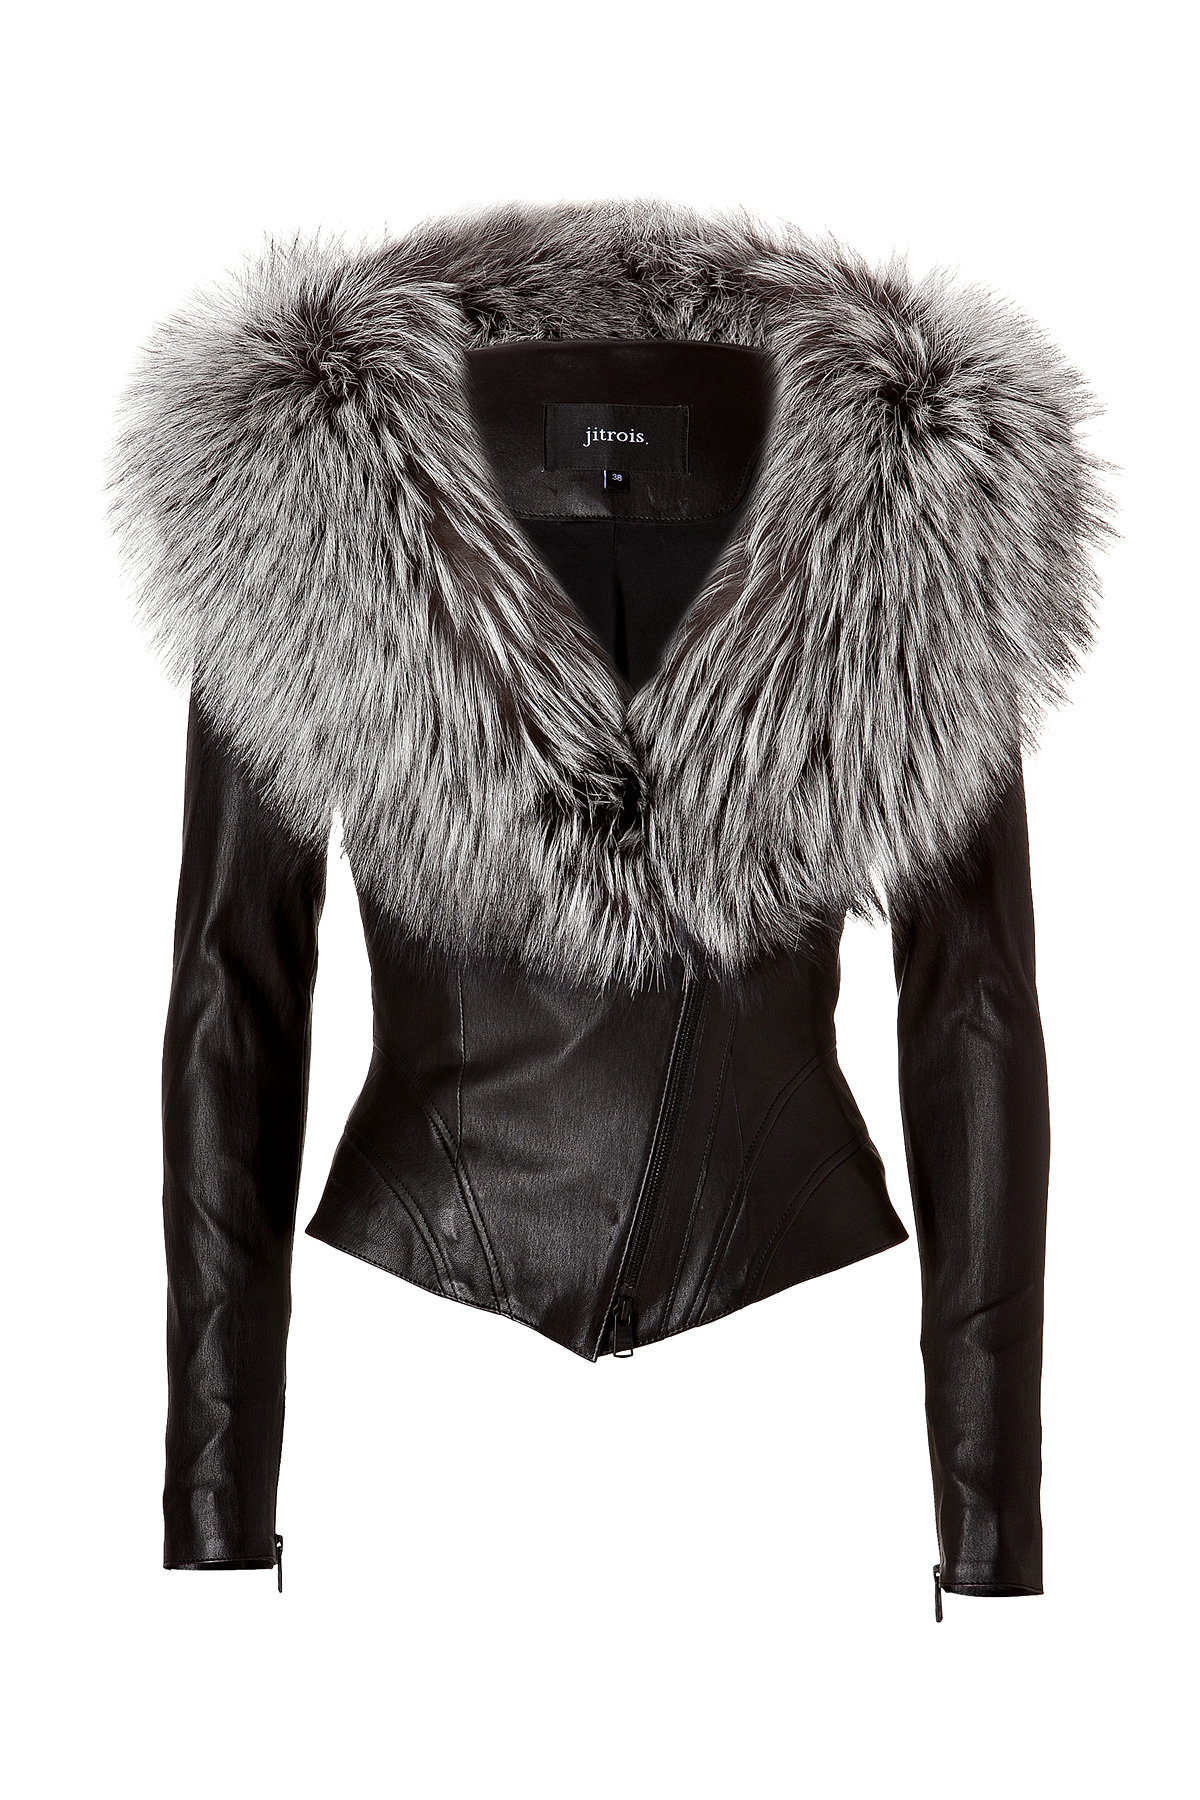 Jitrois Leather Jacket with Silver Fox Fur Collar in ...